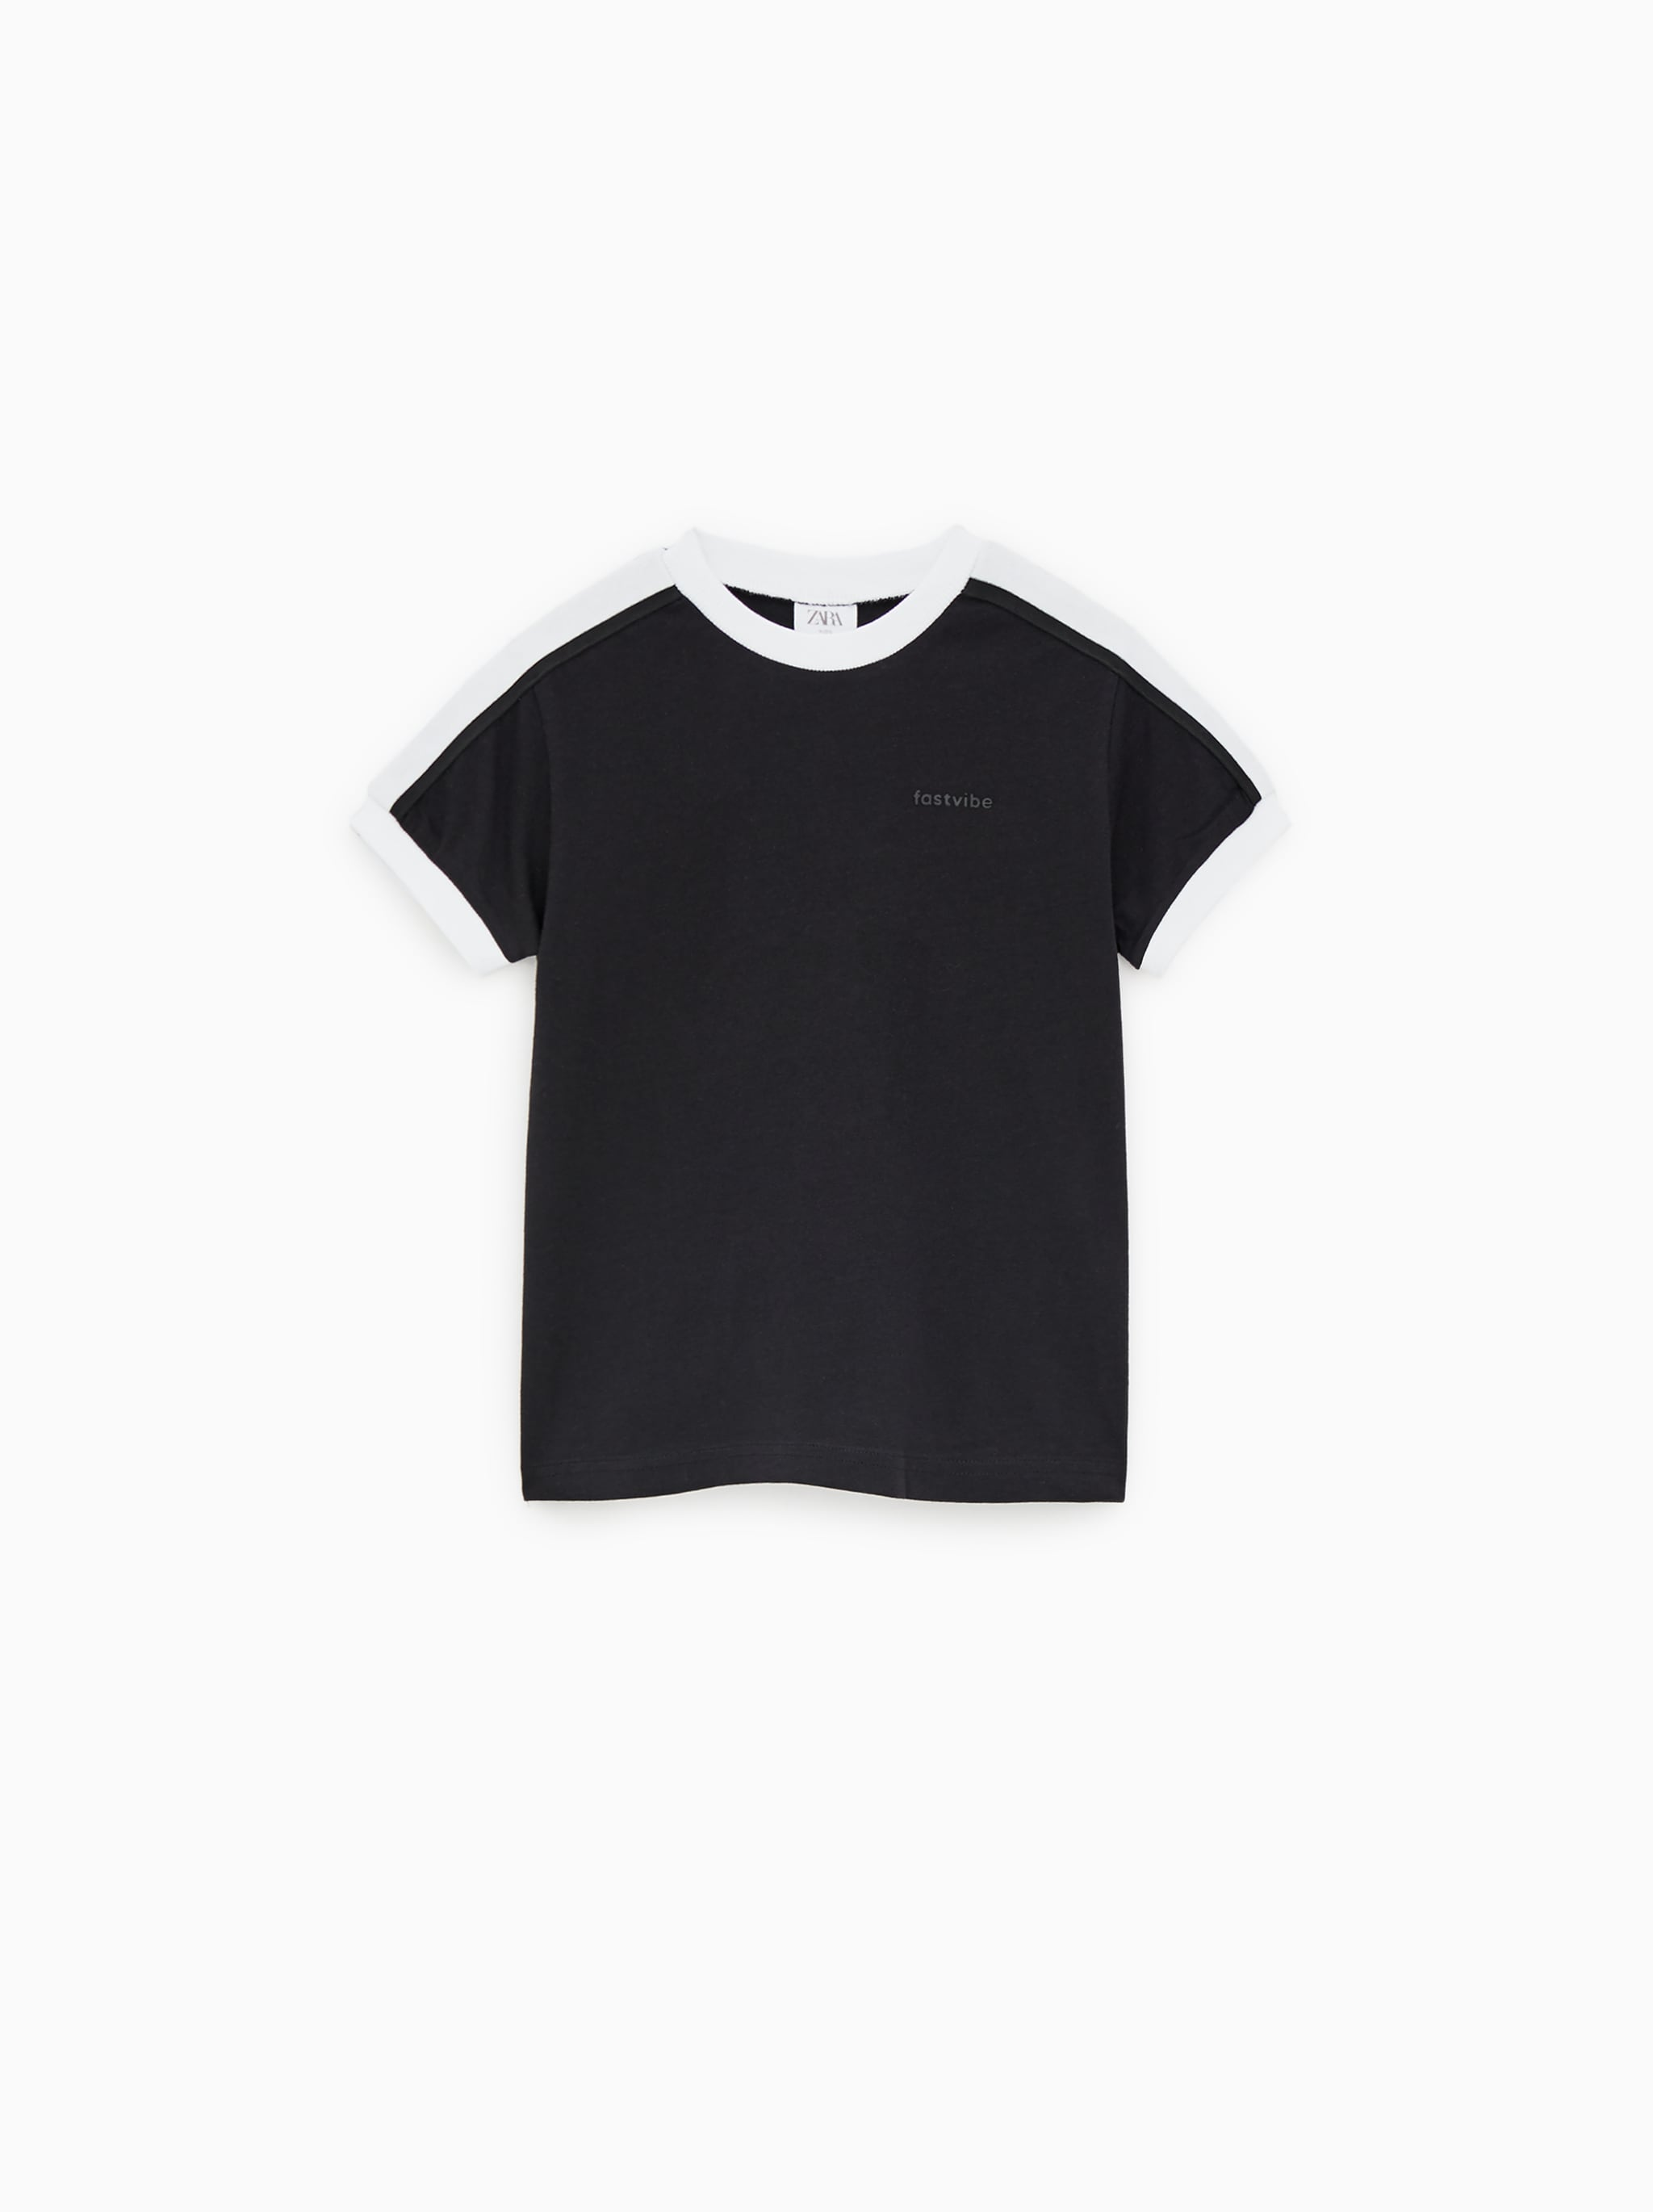 a59acdf99 Zara T-SHIRT WITH BANDS